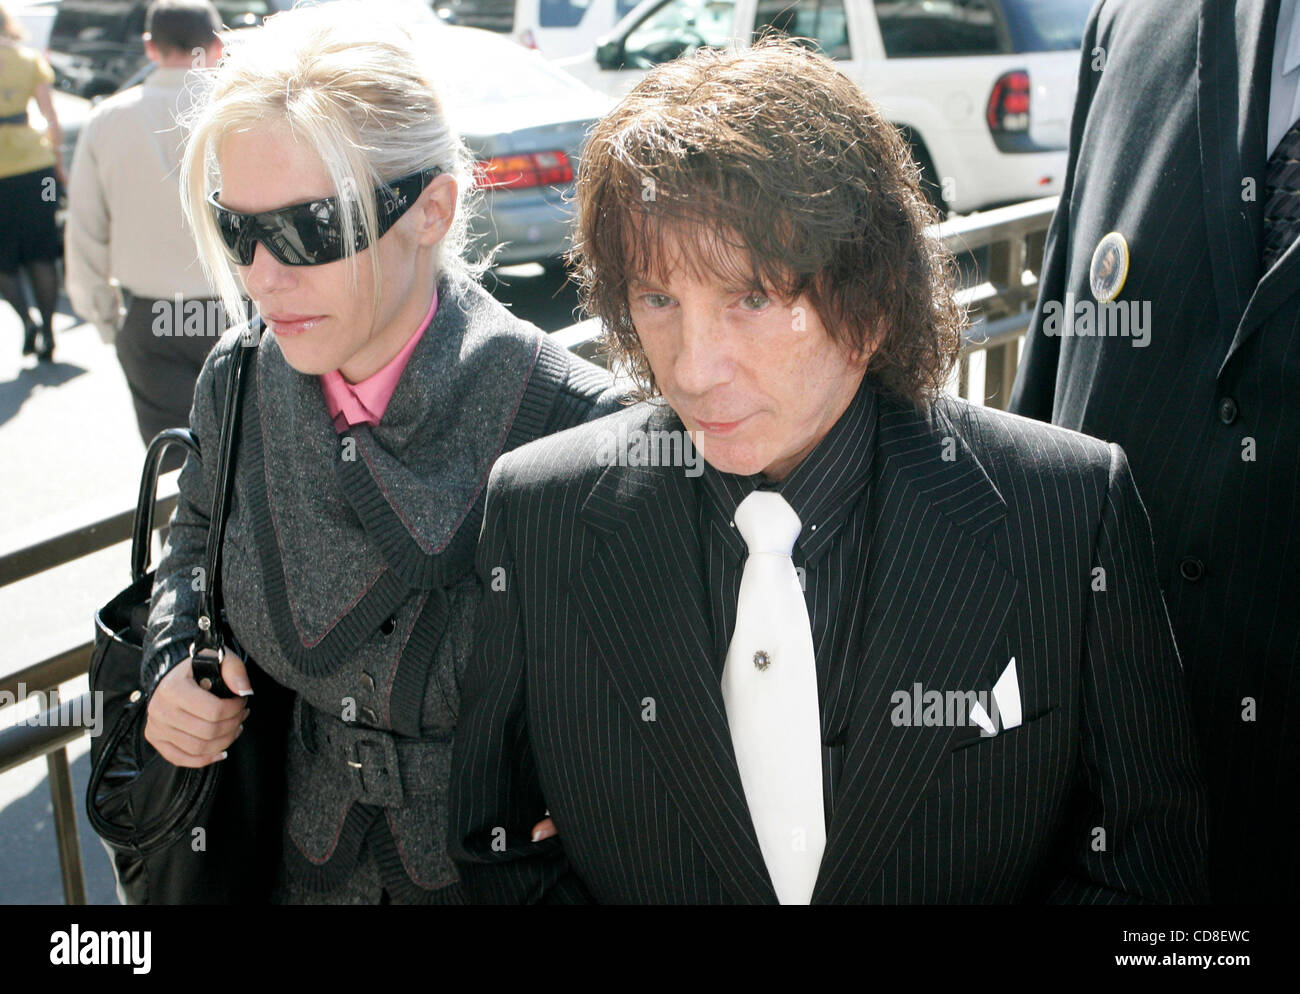 oct 29 2008 los angeles california usa phil spector and his oct 29 2008 los angeles california usa phil spector and his wife rachelle short leave for a lunch break on the first day of his retrial for the fatal